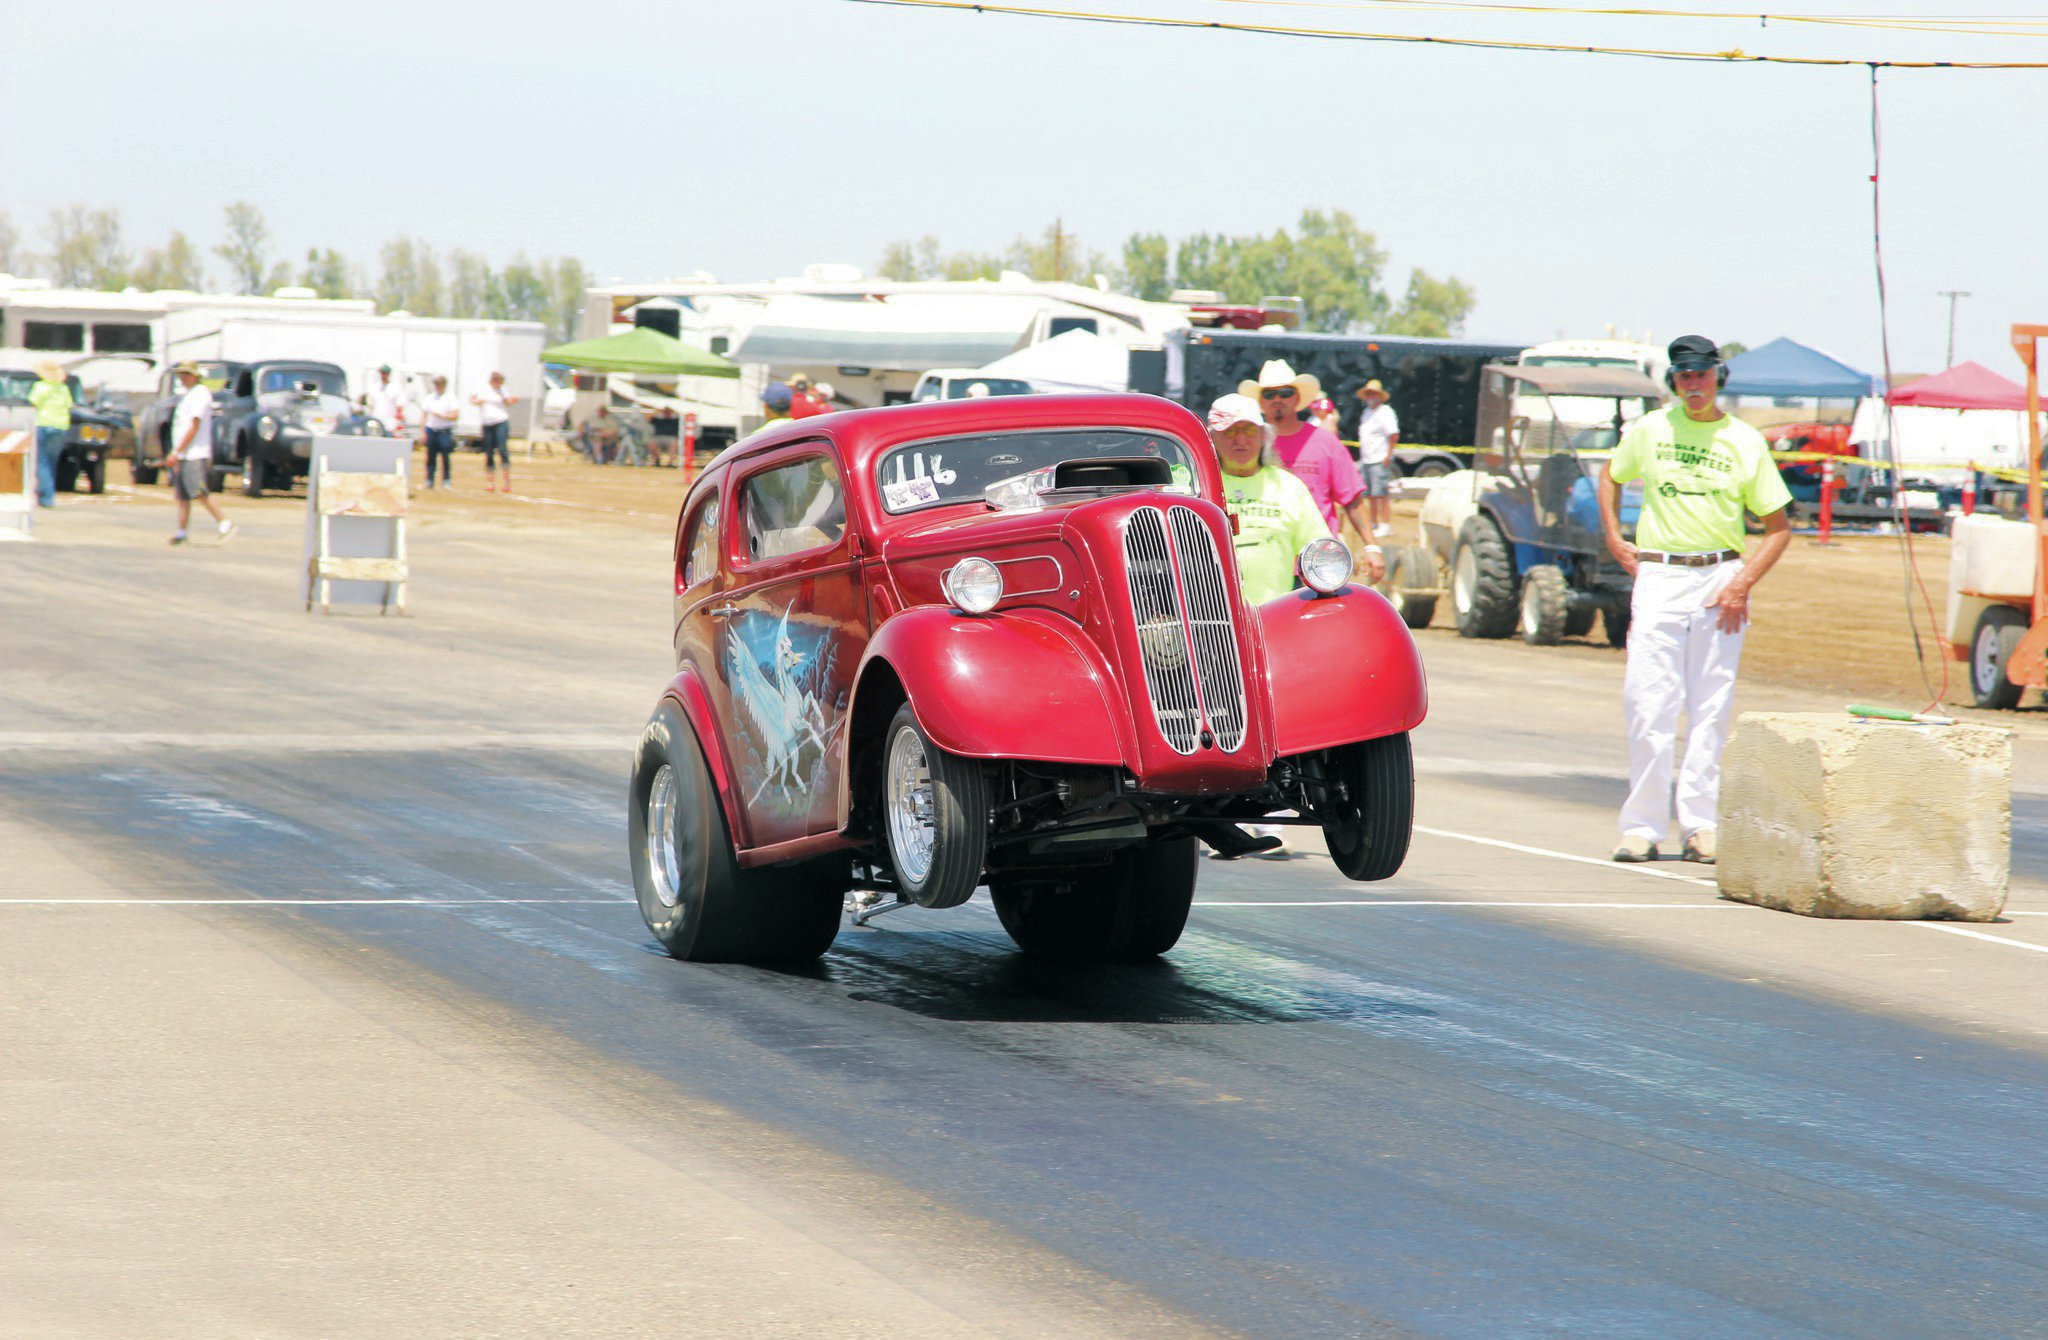 With only soda syrup (like you'd find in restaurants) sprayed down to aid in traction, Mike Acquistapace managed to pull a huge wheelstand in his Anglia. Soda syrup was a common traction compound for dragstrips in the '60s before the creation of the modern VHT traction compound.